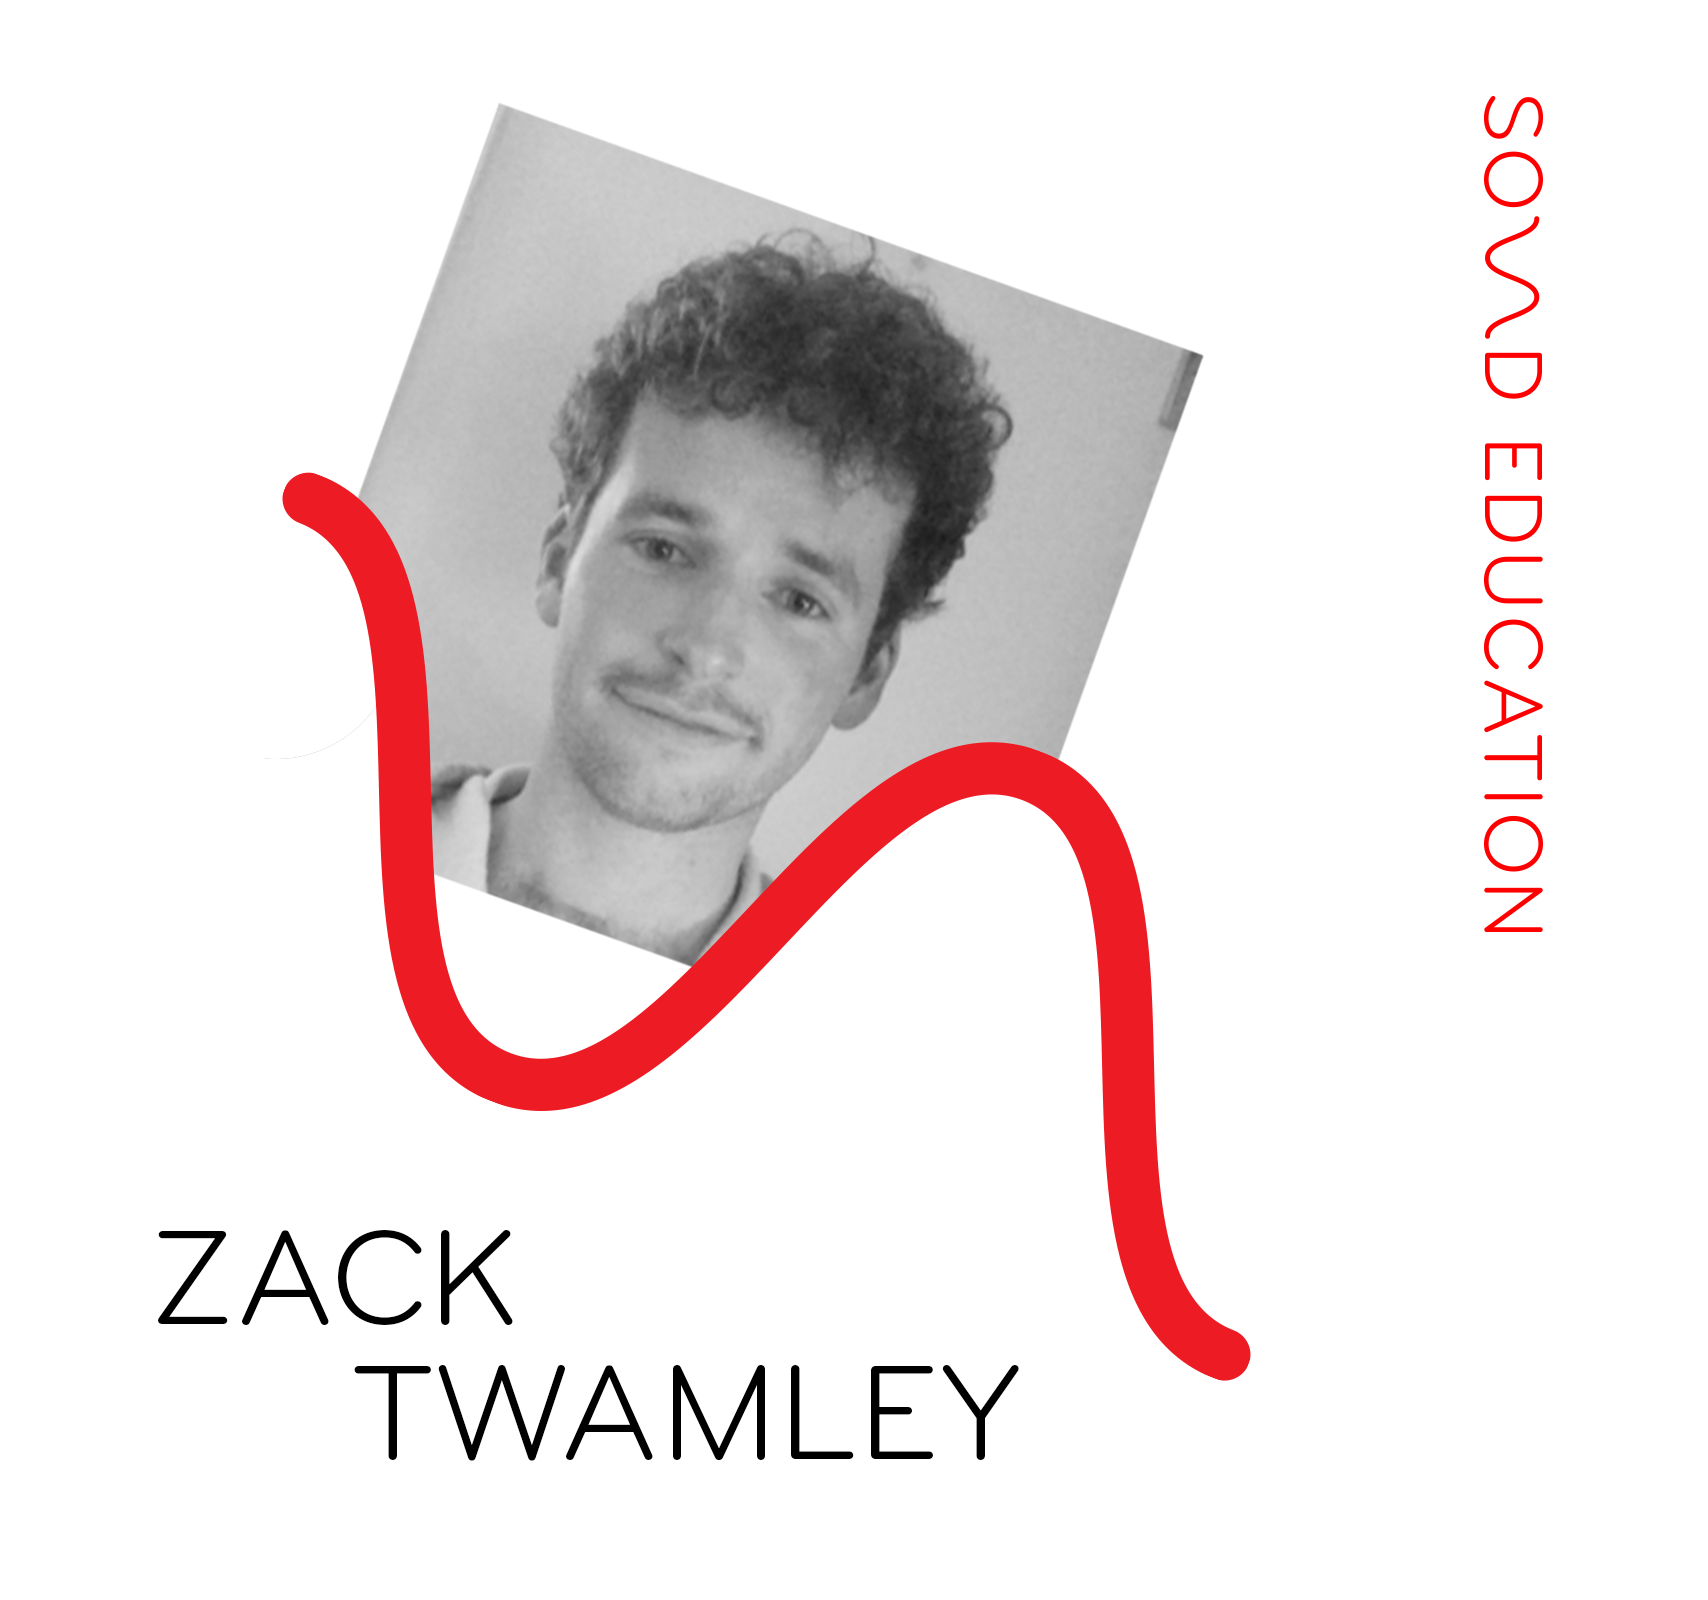 twamley_zack.png